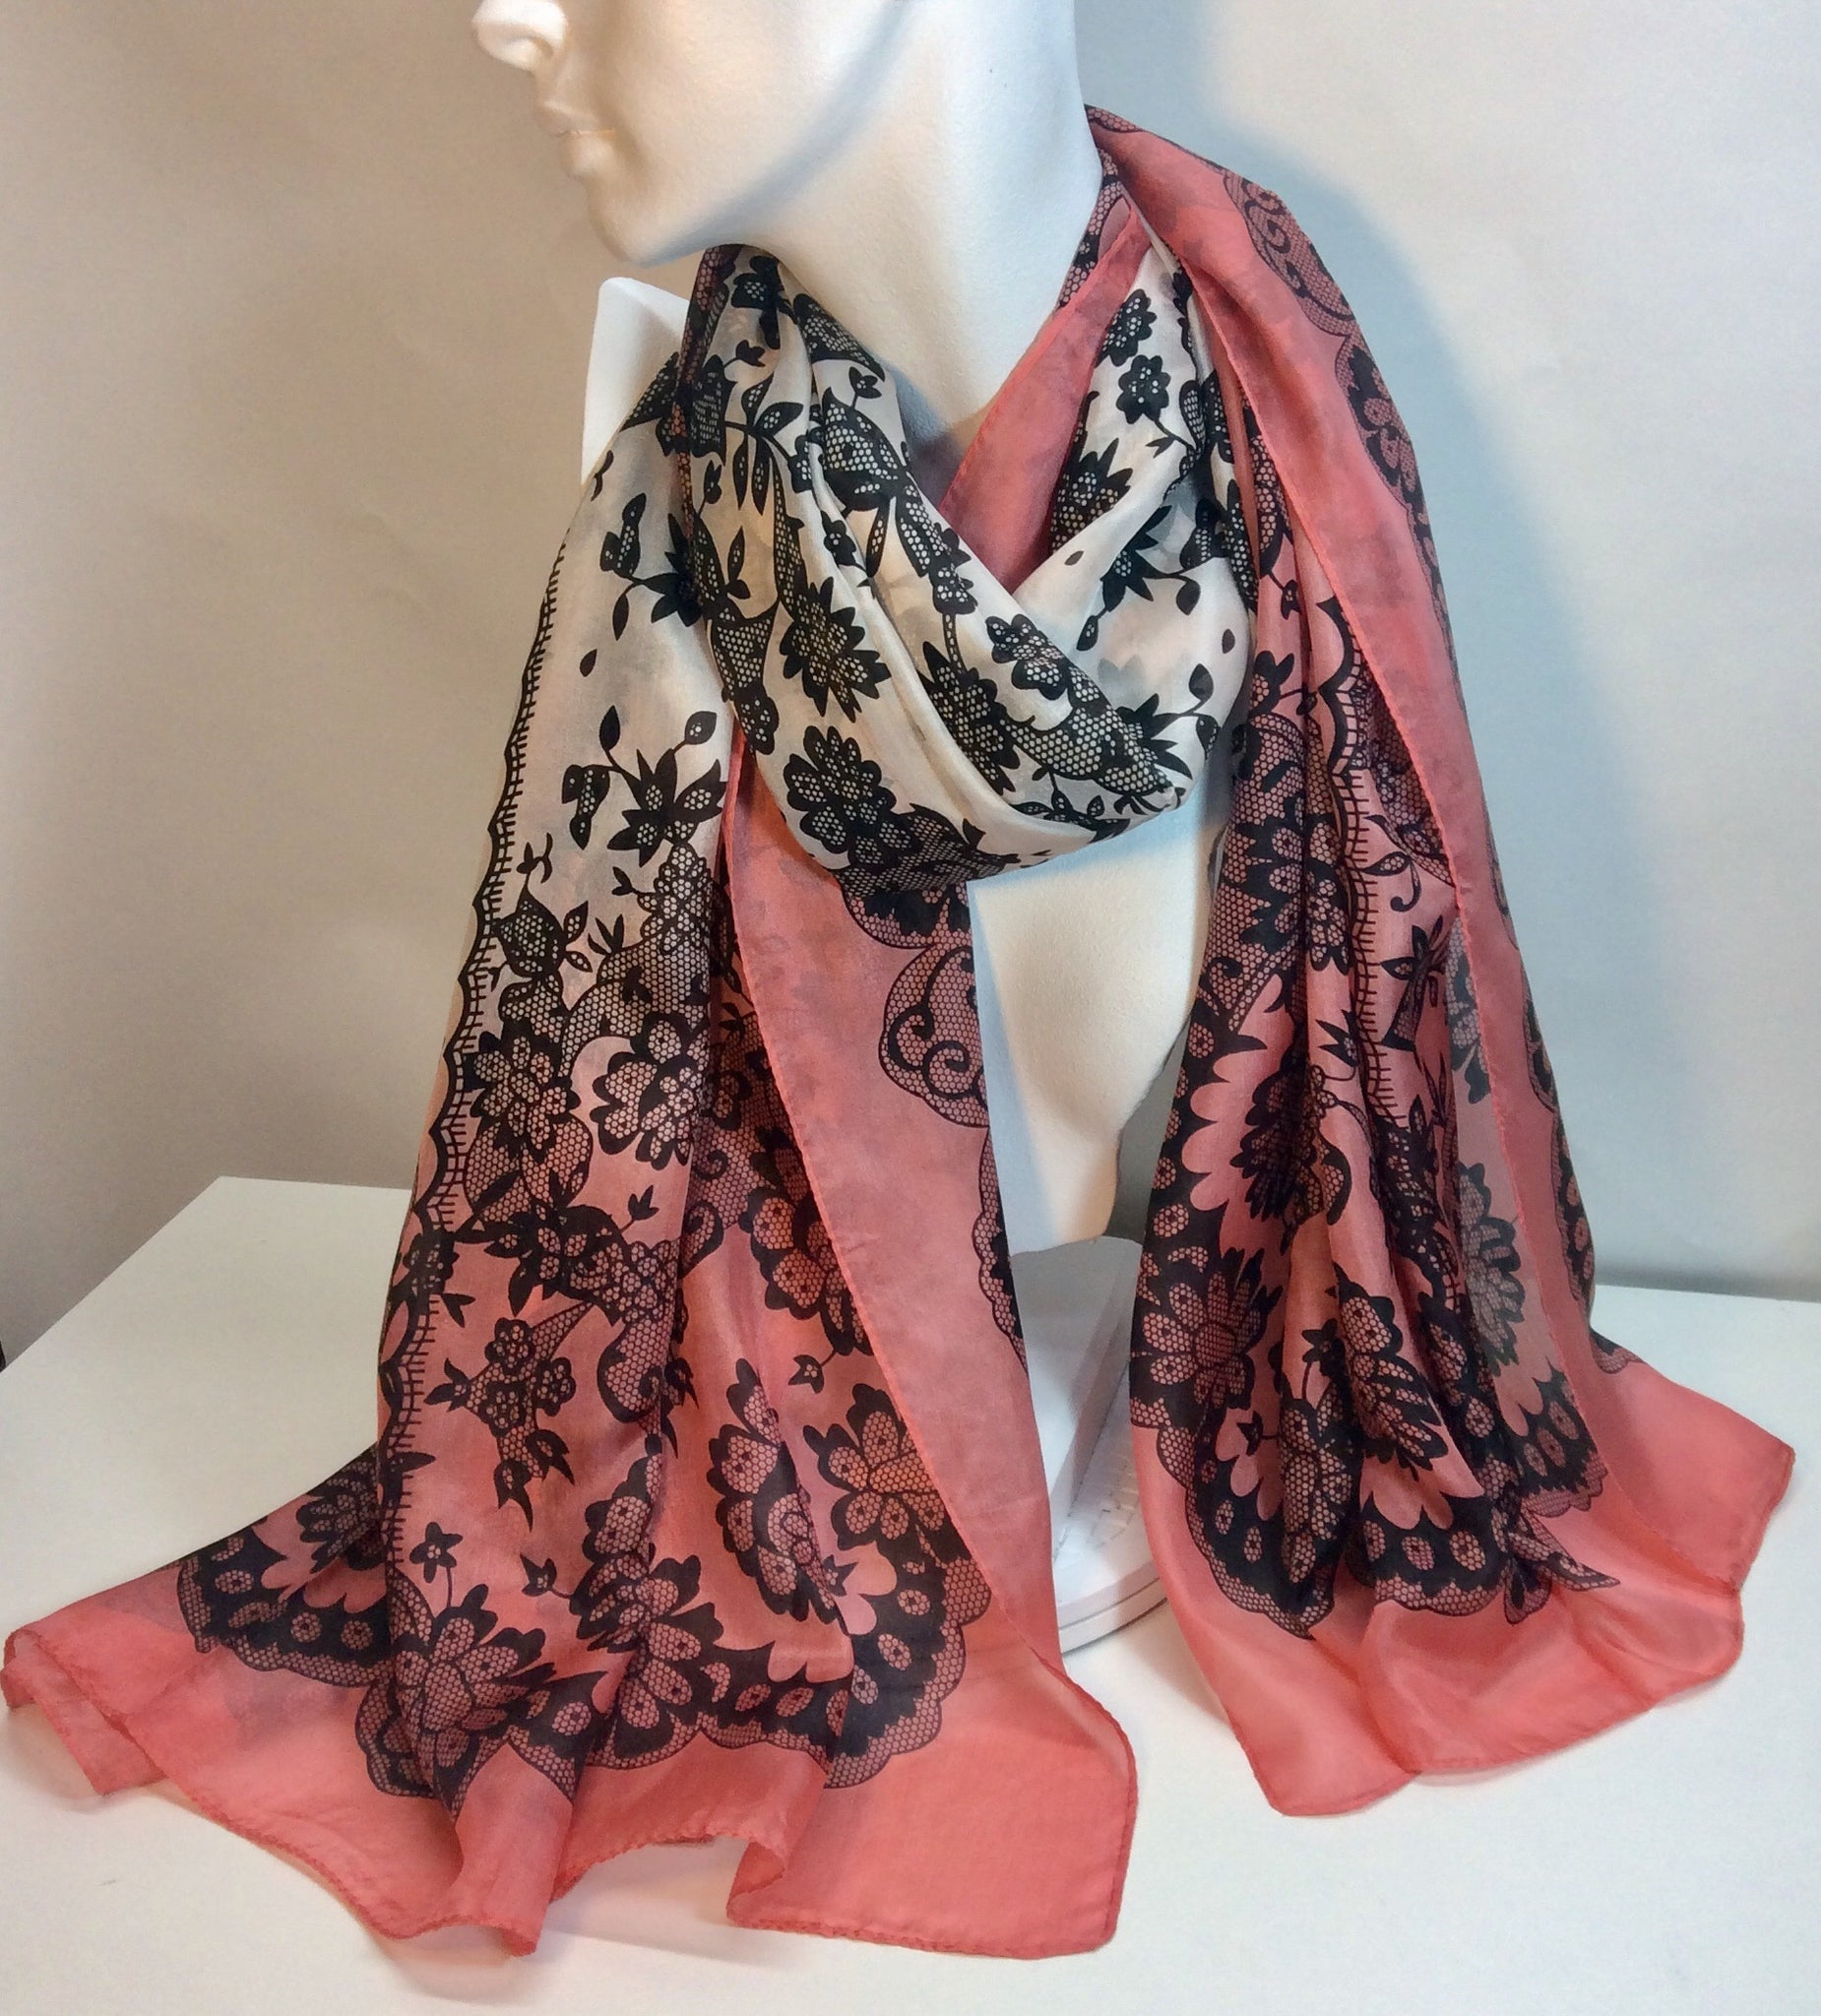 Dramatic black print on this stunning silk scarf